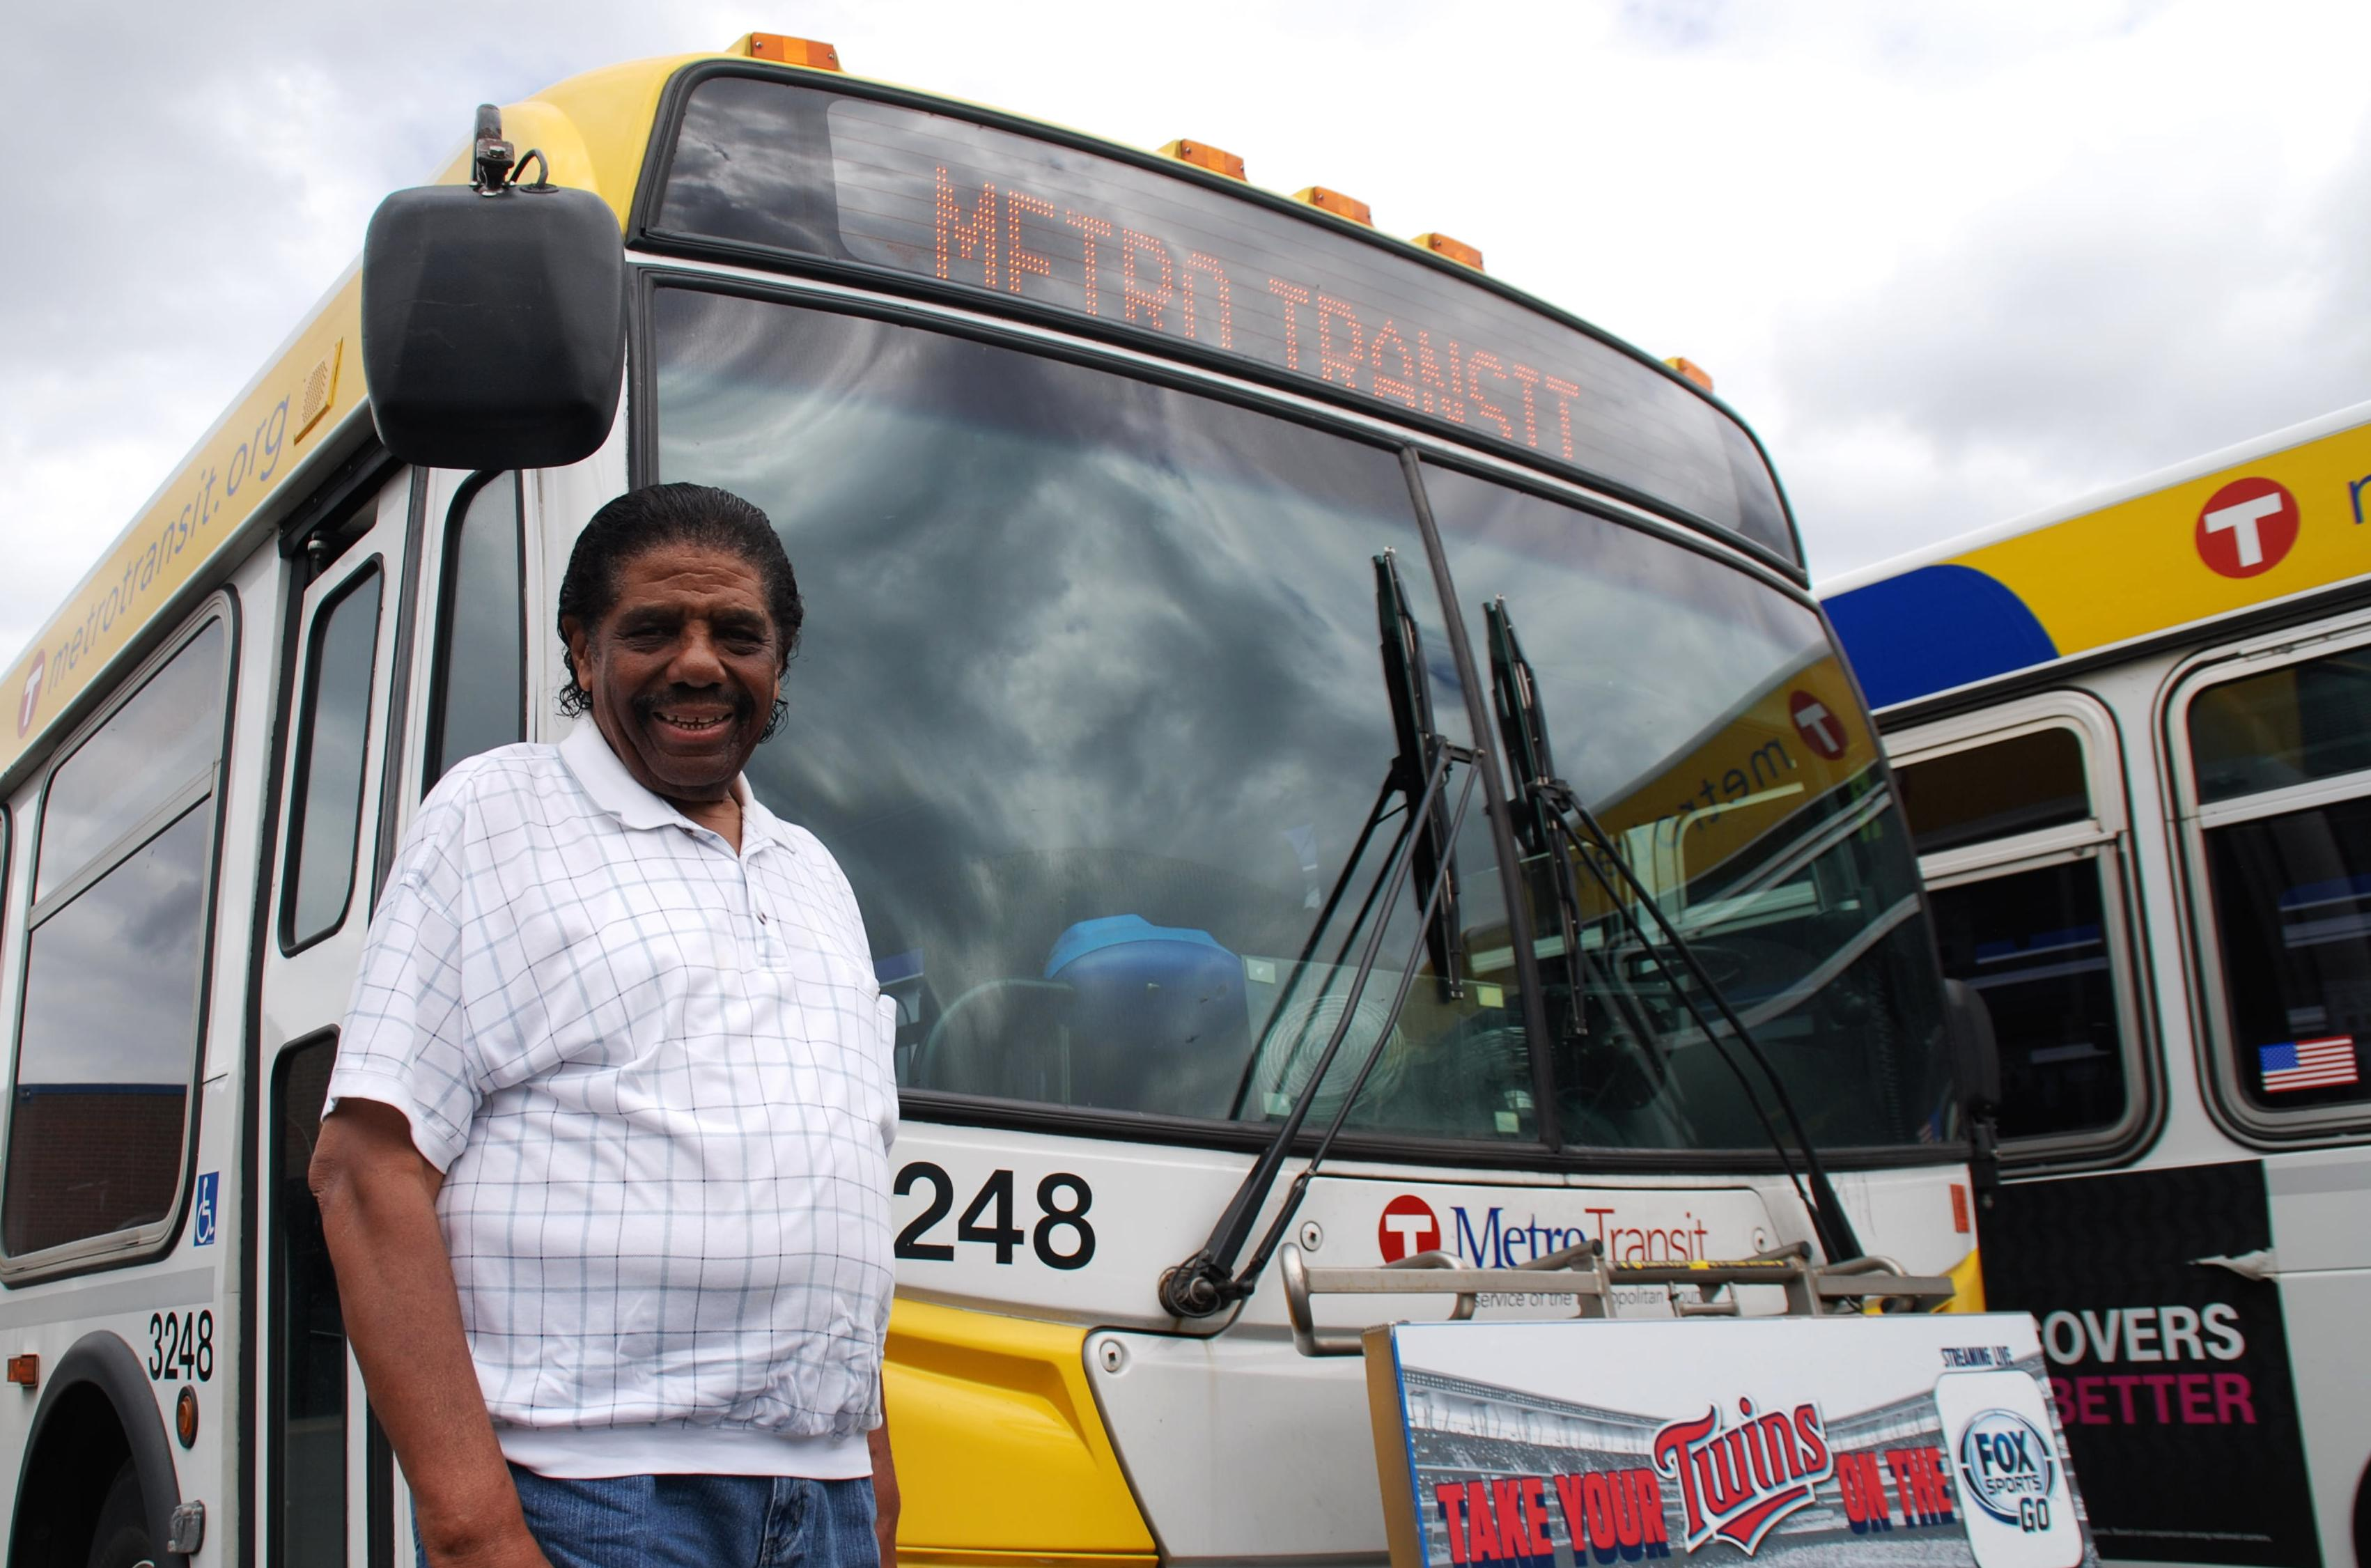 Sy Sharp retired in early-2016 with more than 52 years of service in Metro Transit's Bus Maintenance department.